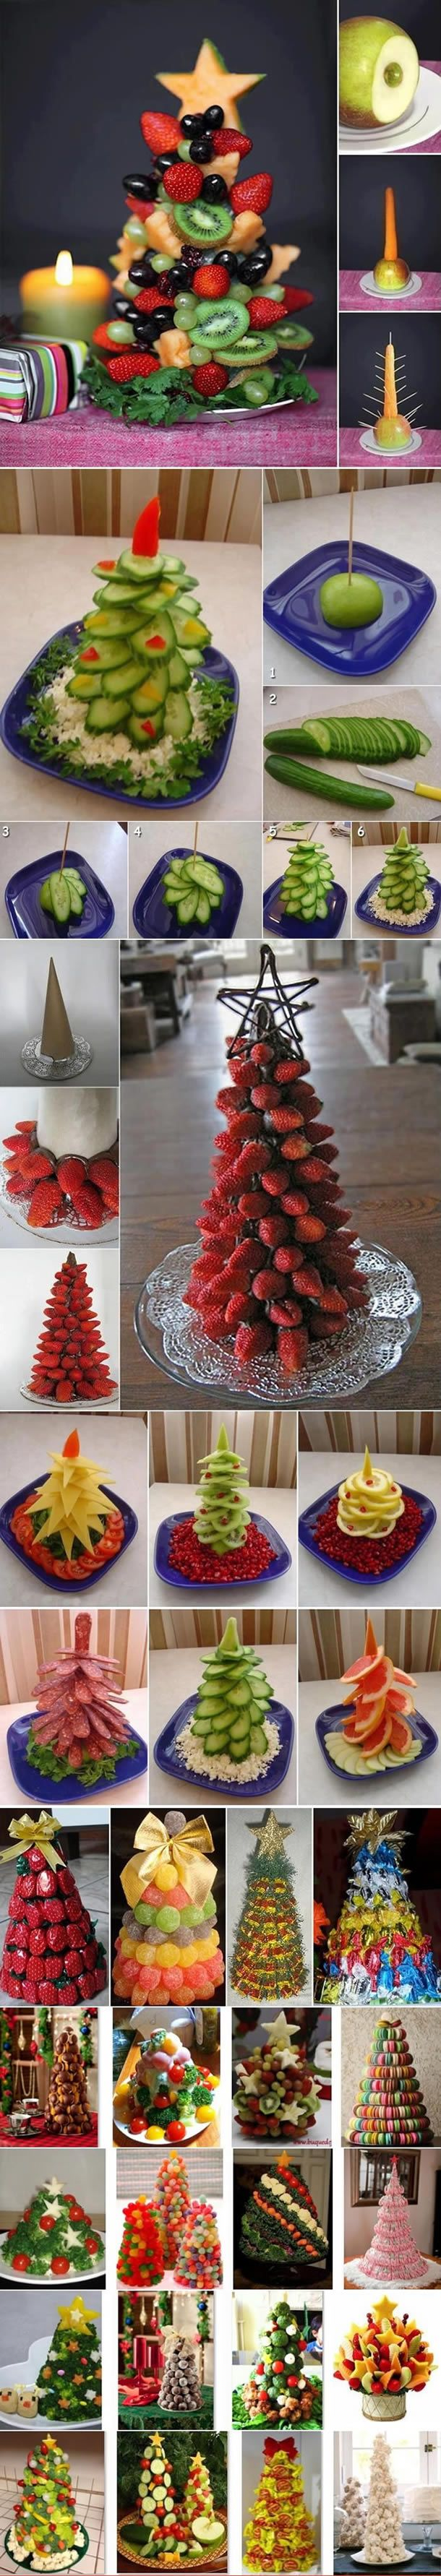 DIY Food Christmas Trees